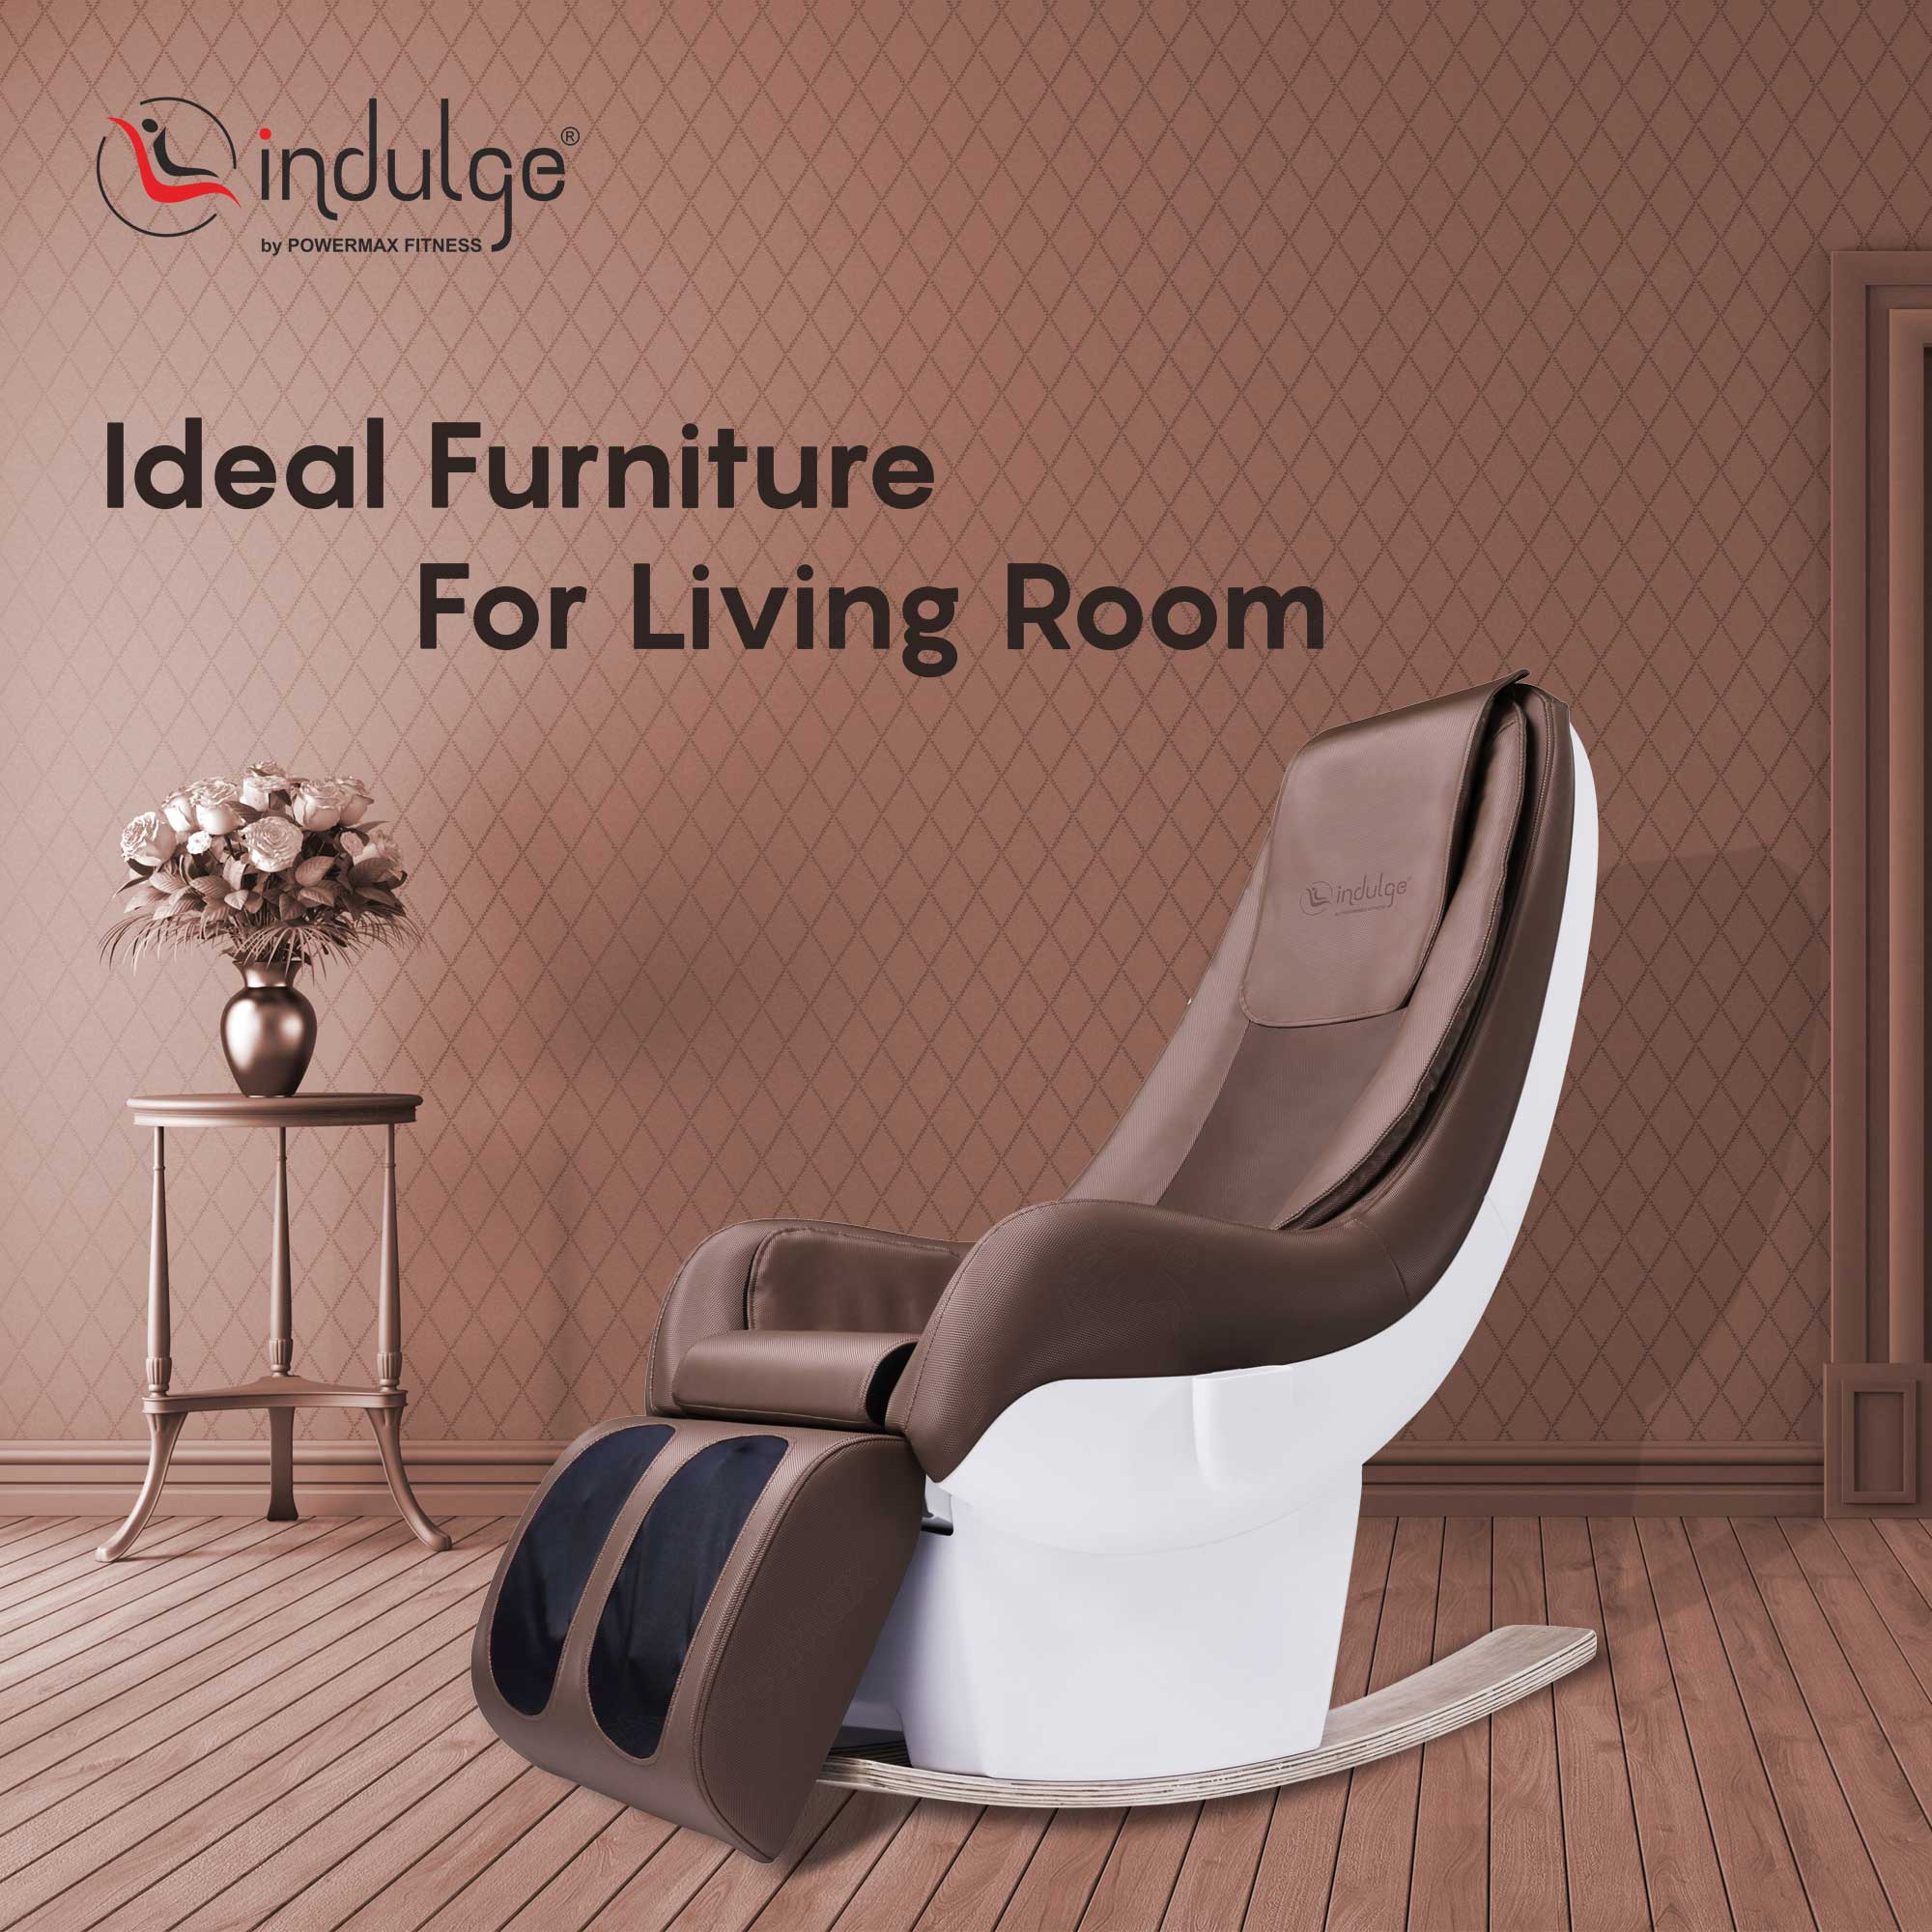 Indulge iS-7R Luxurious Rocking Massage Chair